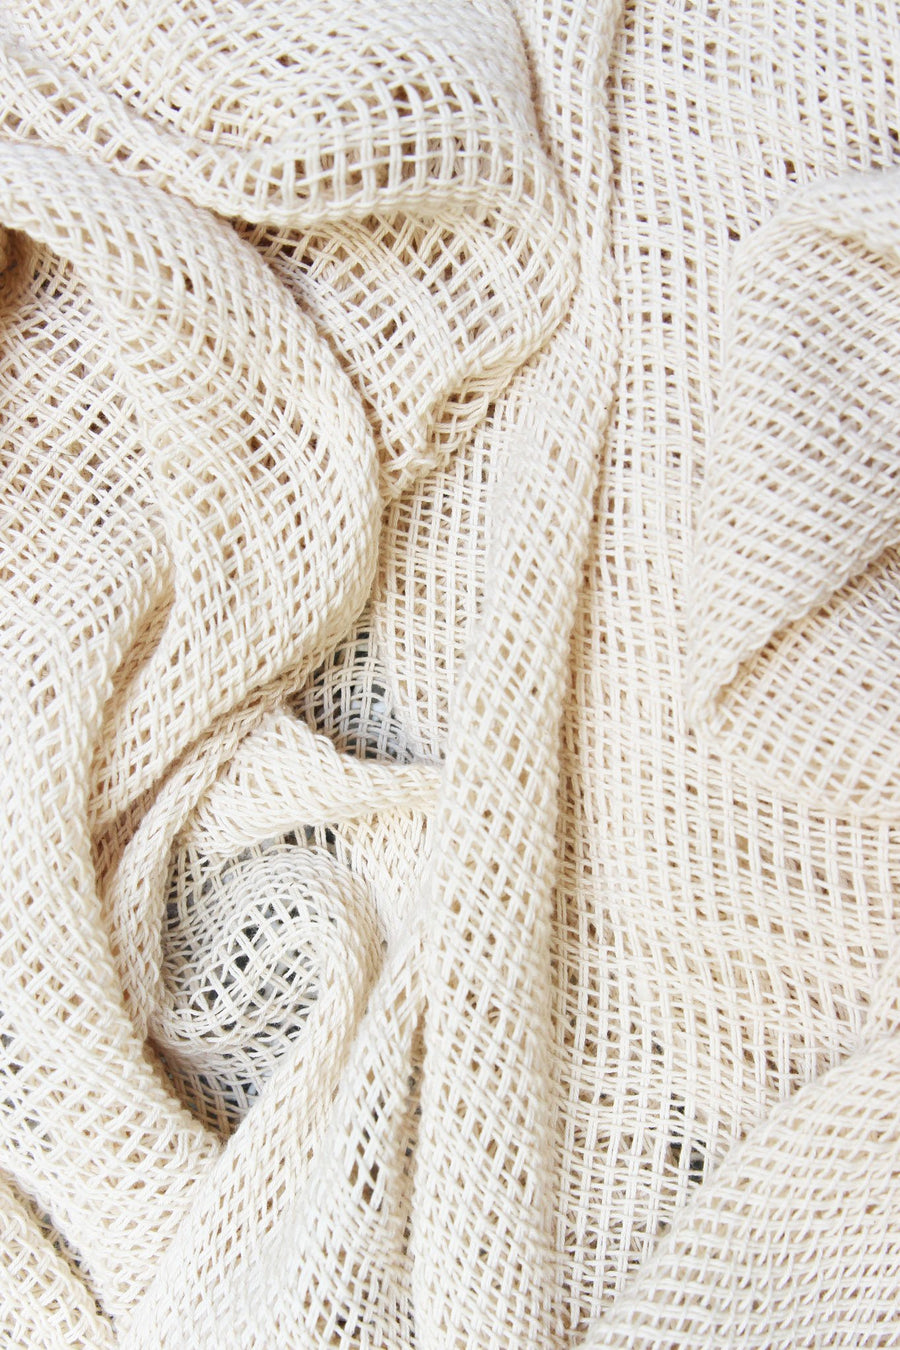 This is a detail photo of the texture of a handmade knit natural-colored shawl.